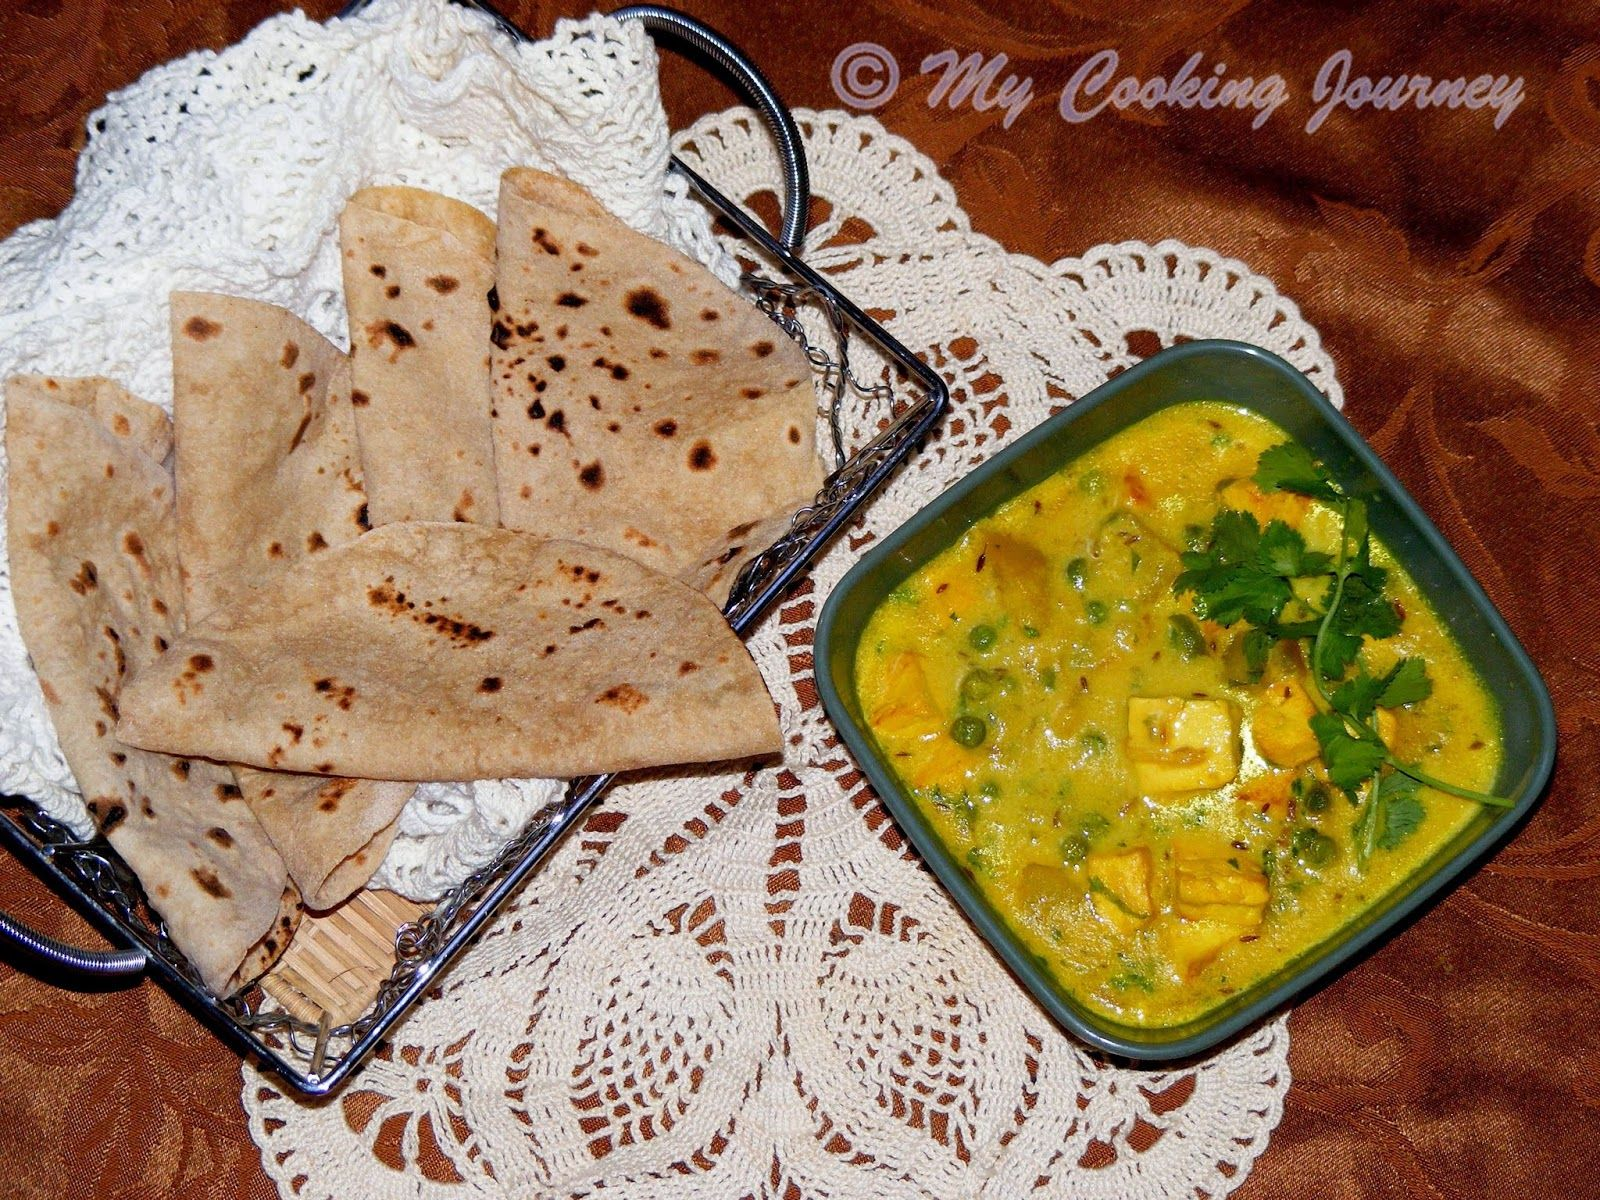 My cooking journey sana thongba from manipur a simple paneer my cooking journey sana thongba from manipur a simple paneer curry forumfinder Choice Image